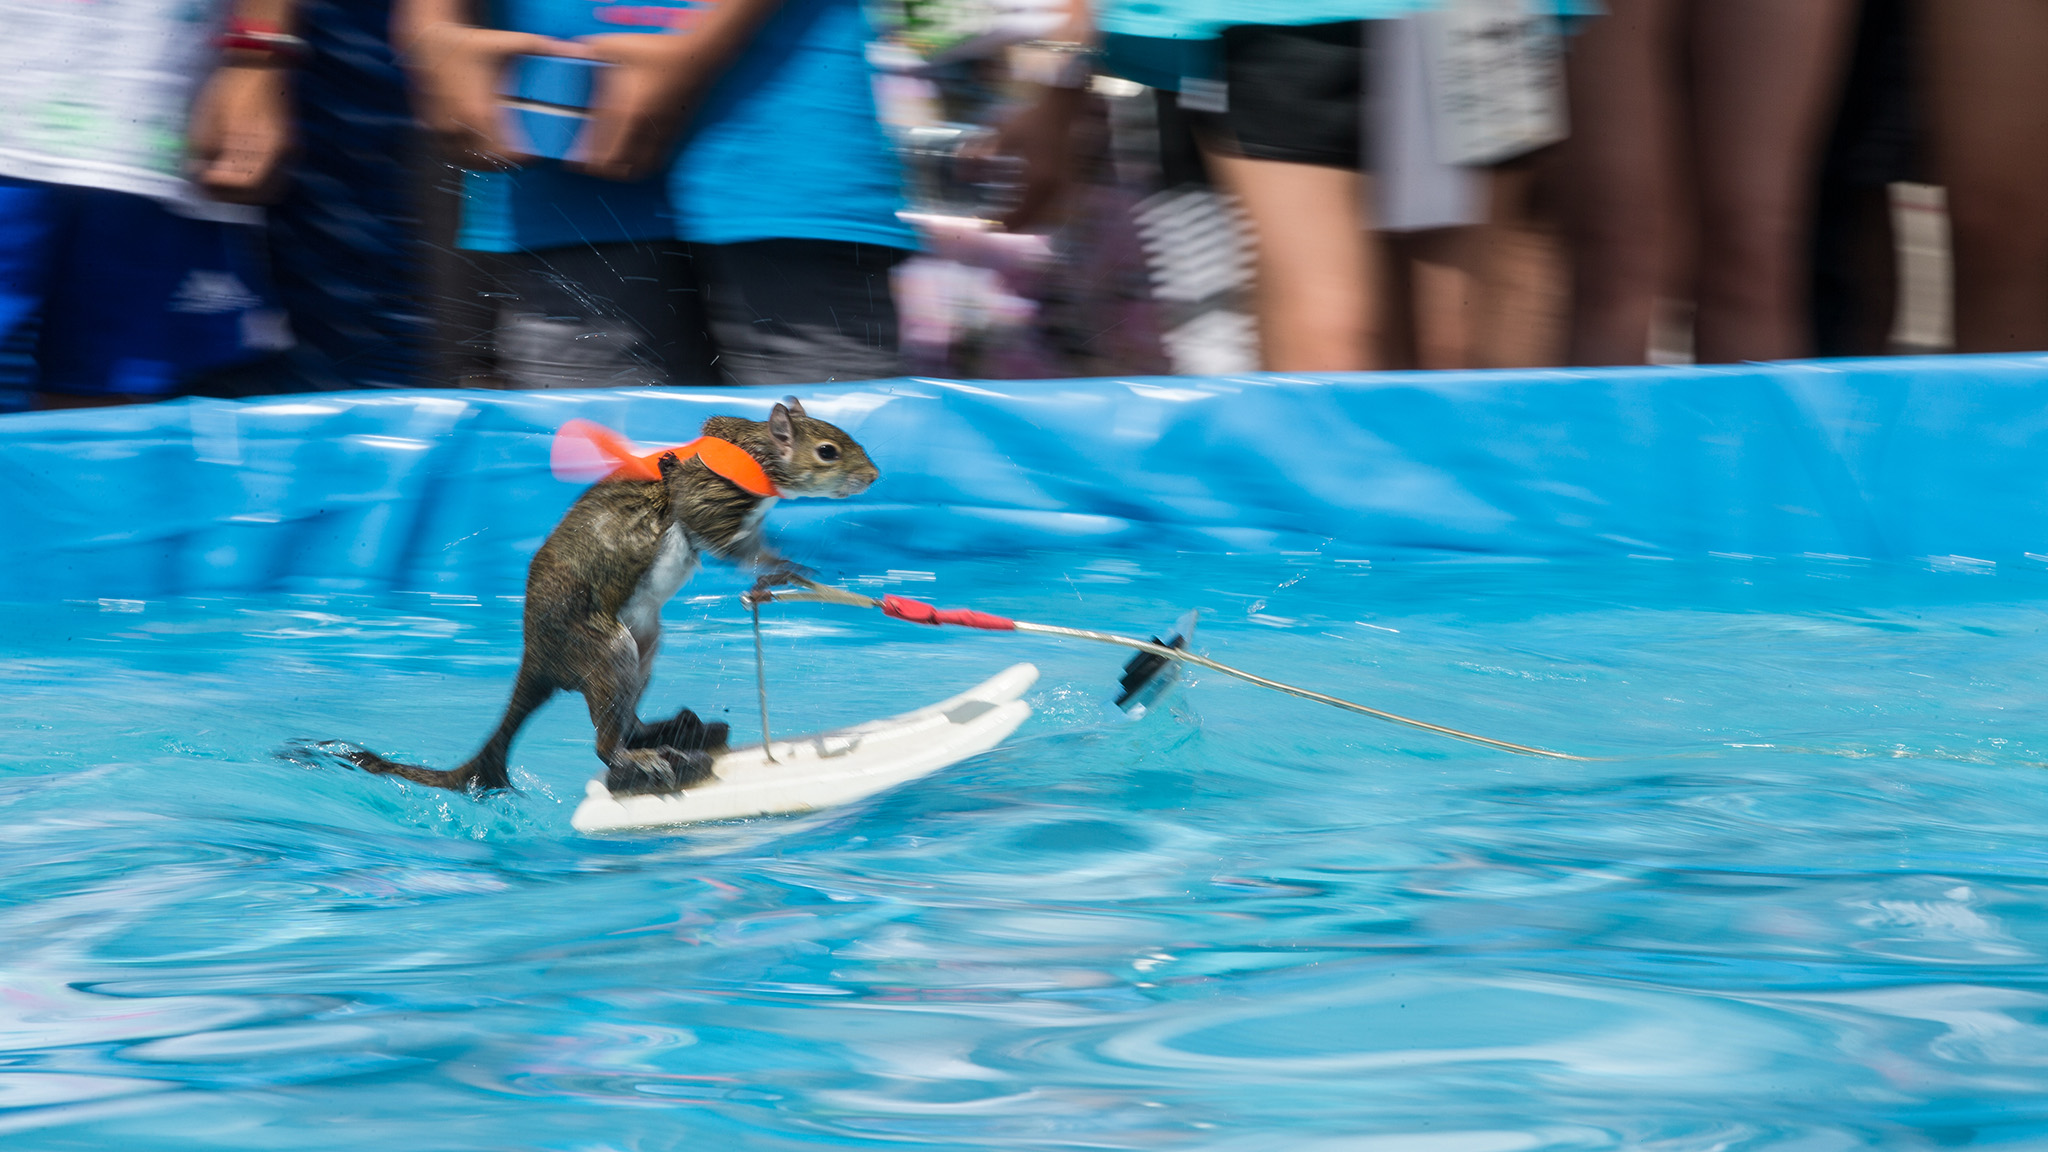 Twiggy the water-skiing squirrel returns for X Games Minneapolis 2018.